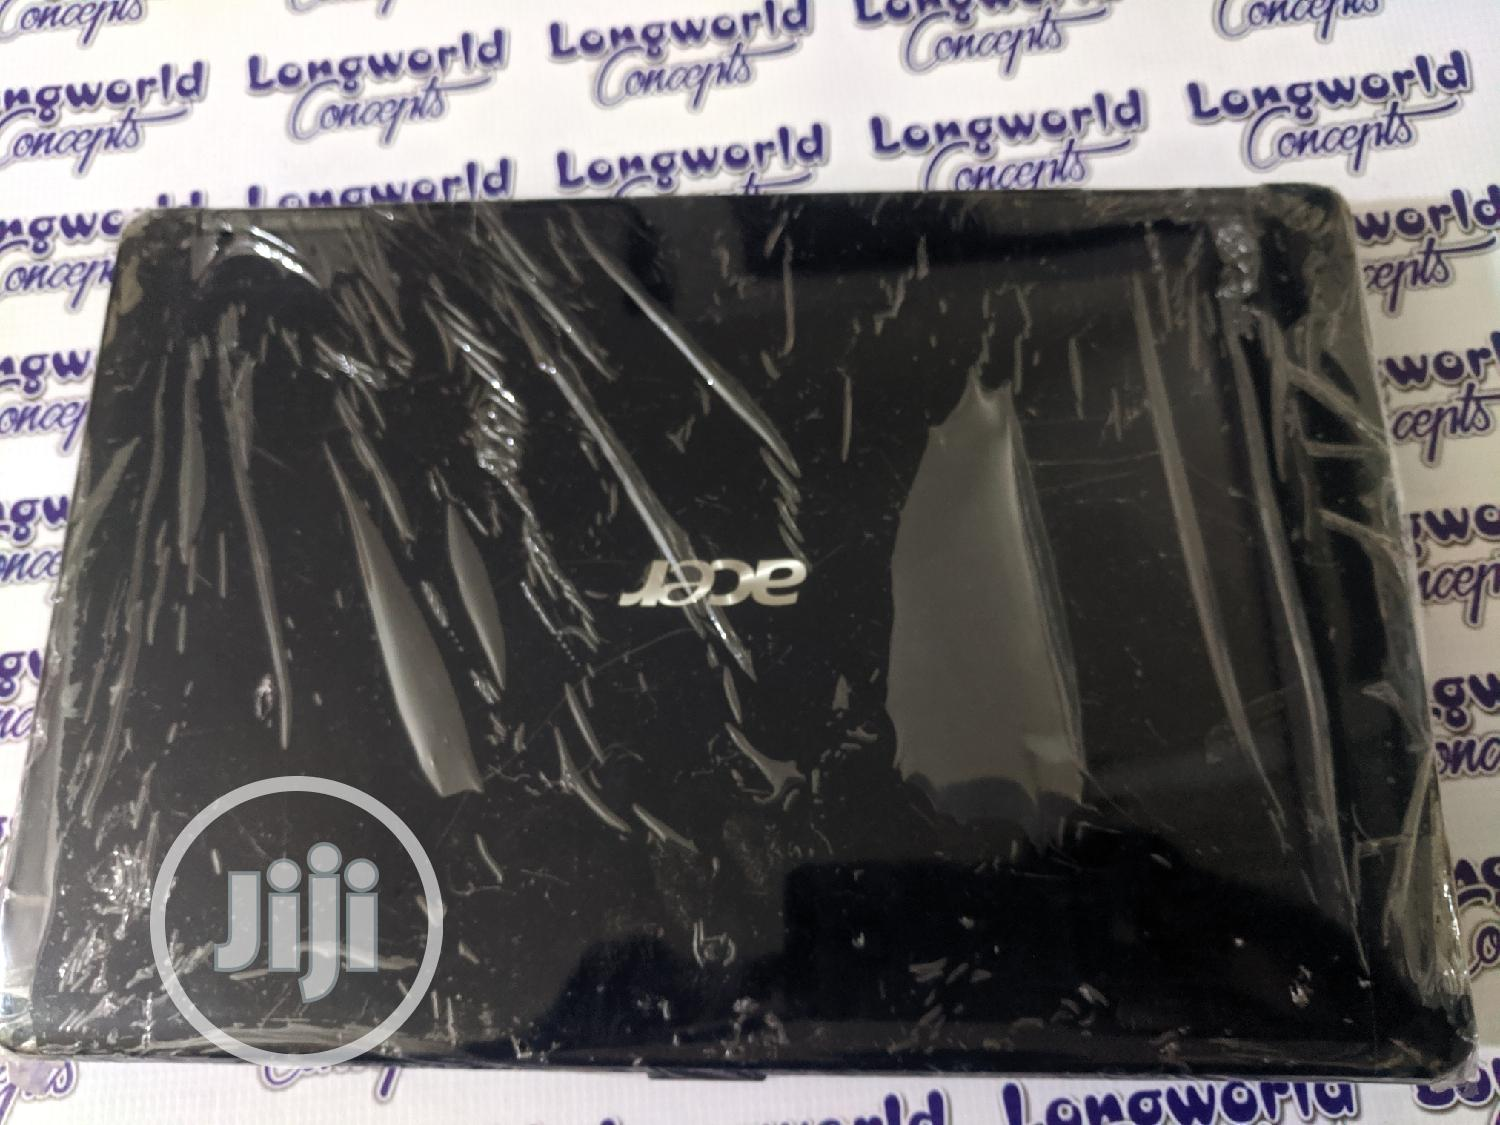 Laptop Acer Aspire 5732Z 4GB Intel Pentium HDD 320GB | Laptops & Computers for sale in Wuse, Abuja (FCT) State, Nigeria